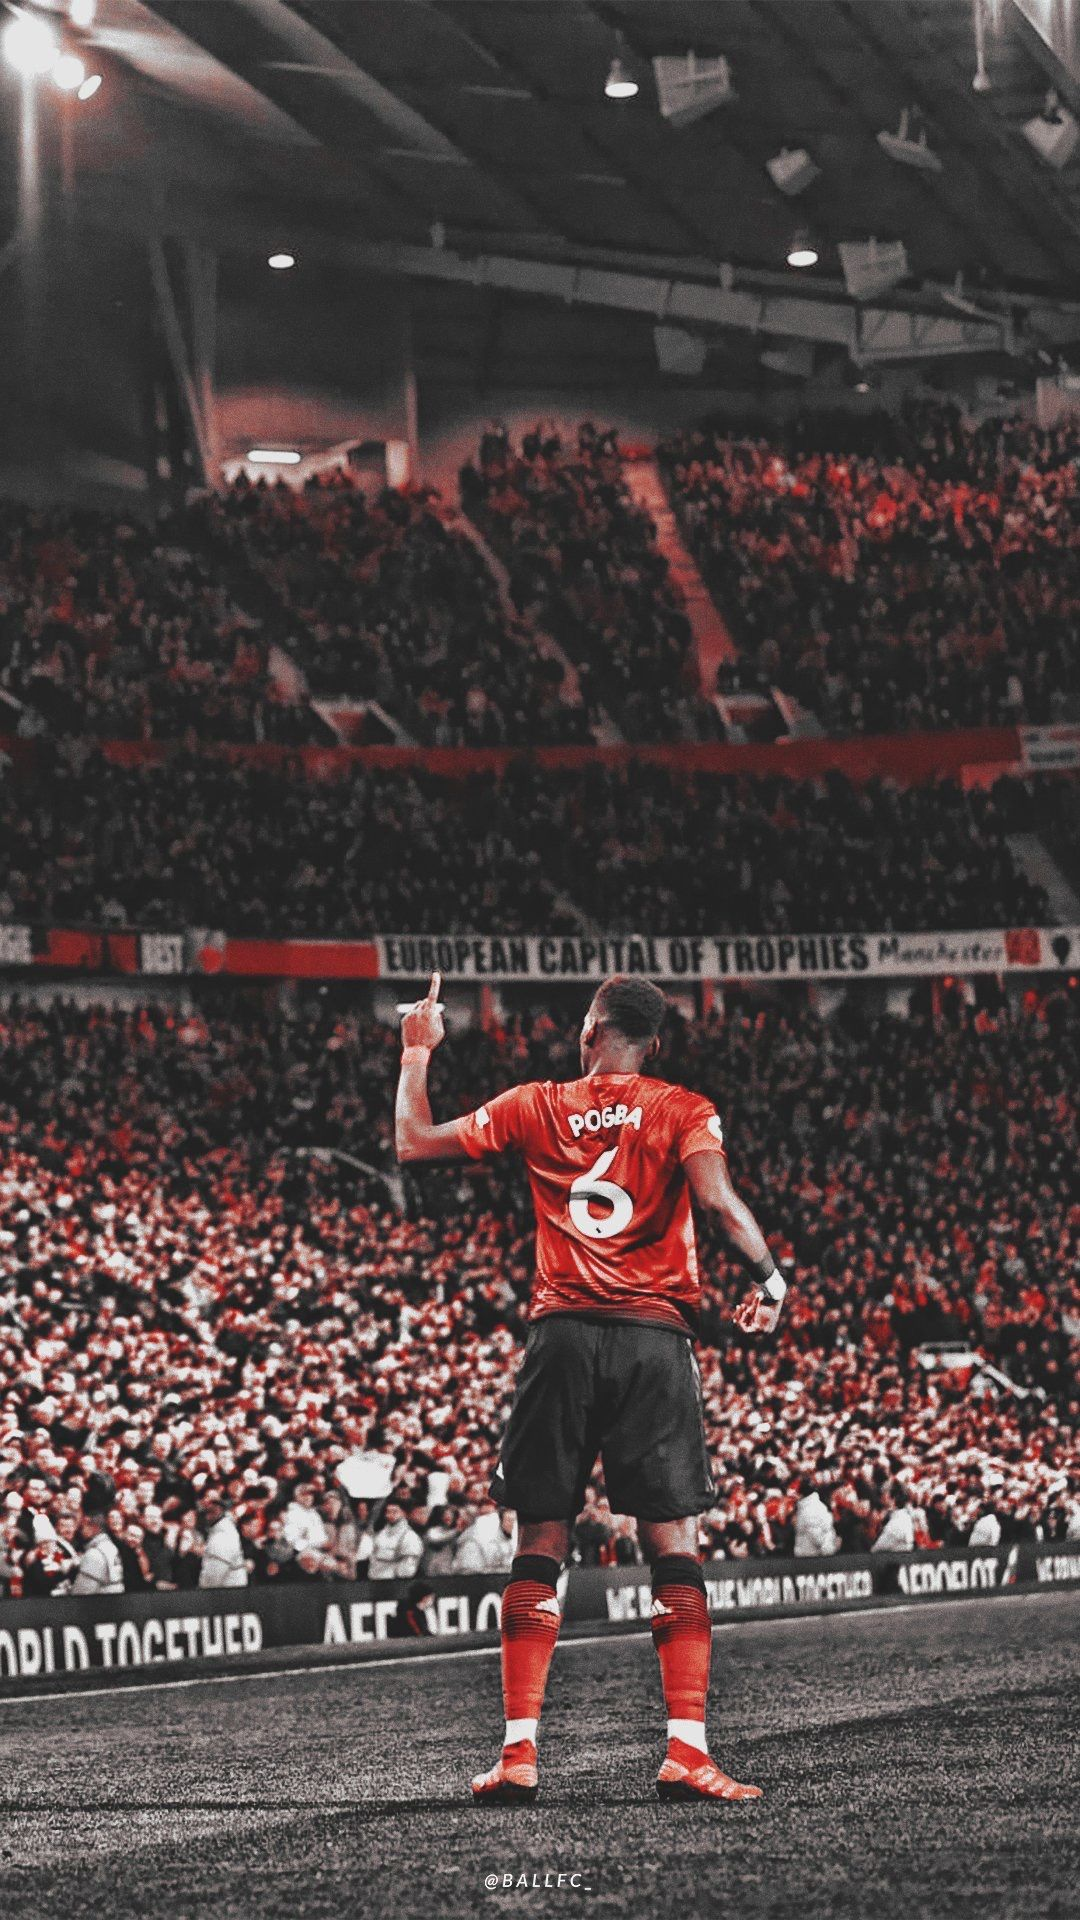 Most Awesome Manchester United Wallpapers 2008 Pogba